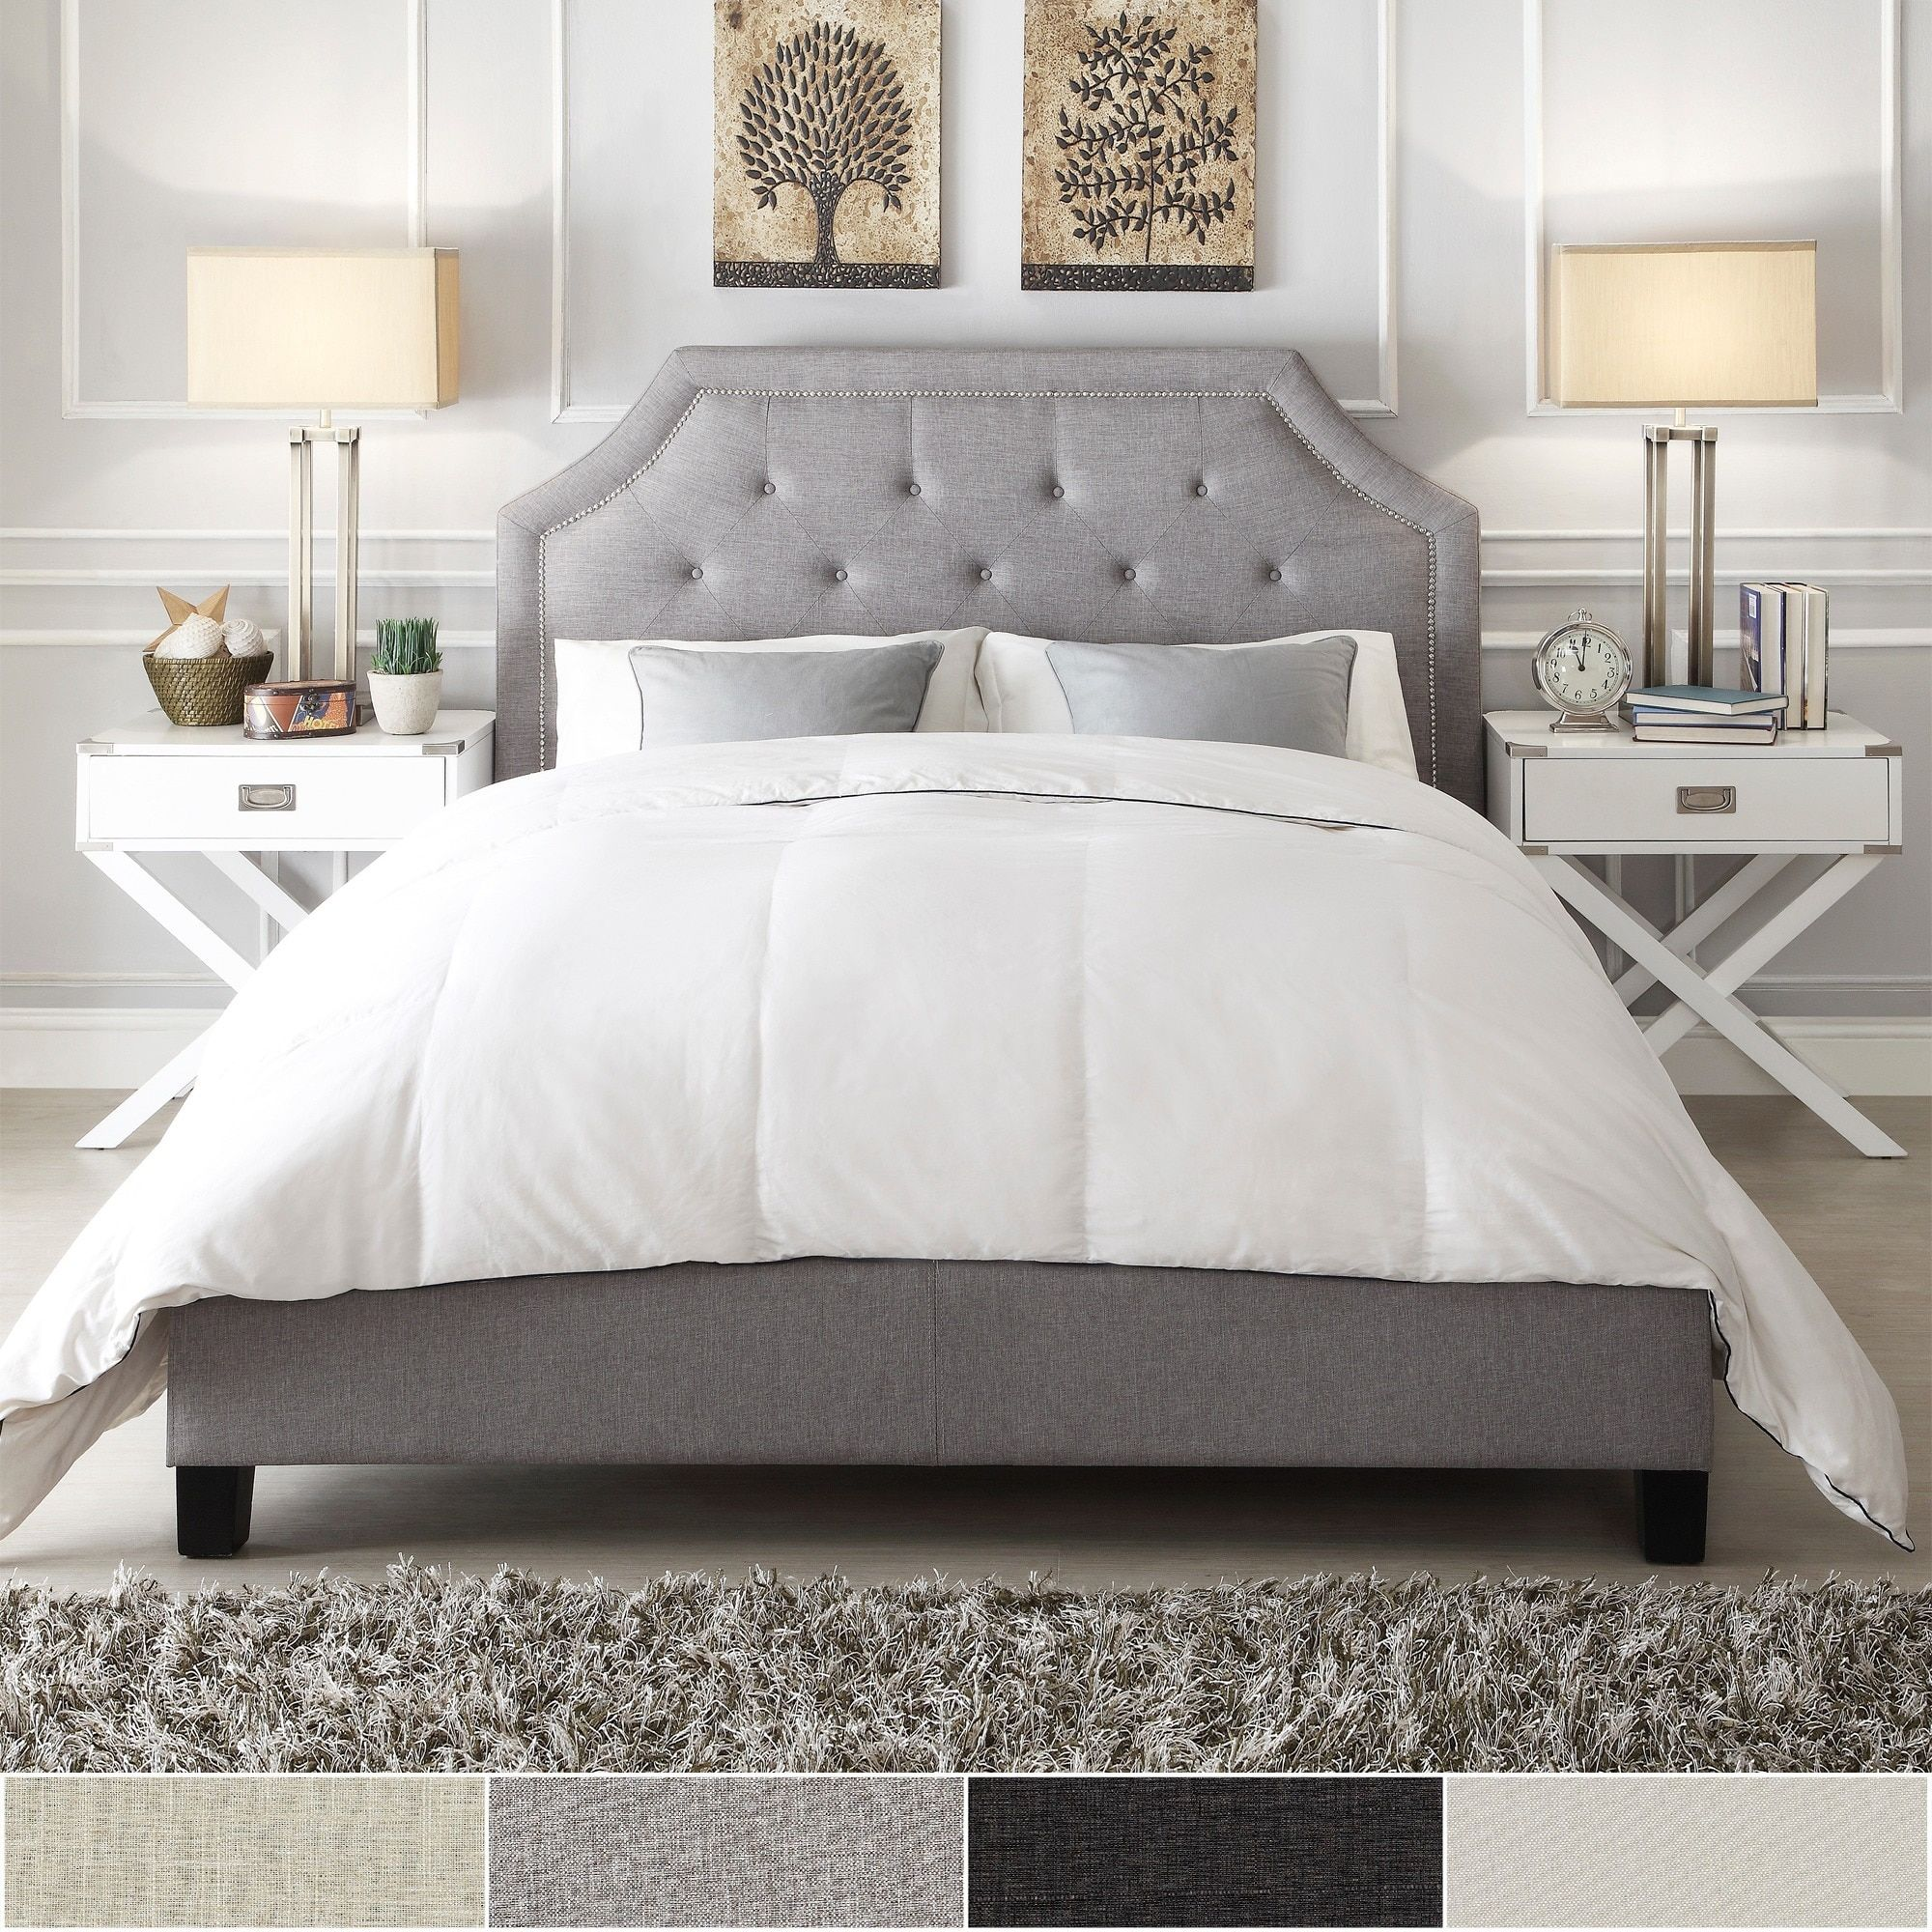 Grace Button Tufted Arched Bridge Upholstered Queen Bed by INSPIRE Q |  Overstock.com Shopping